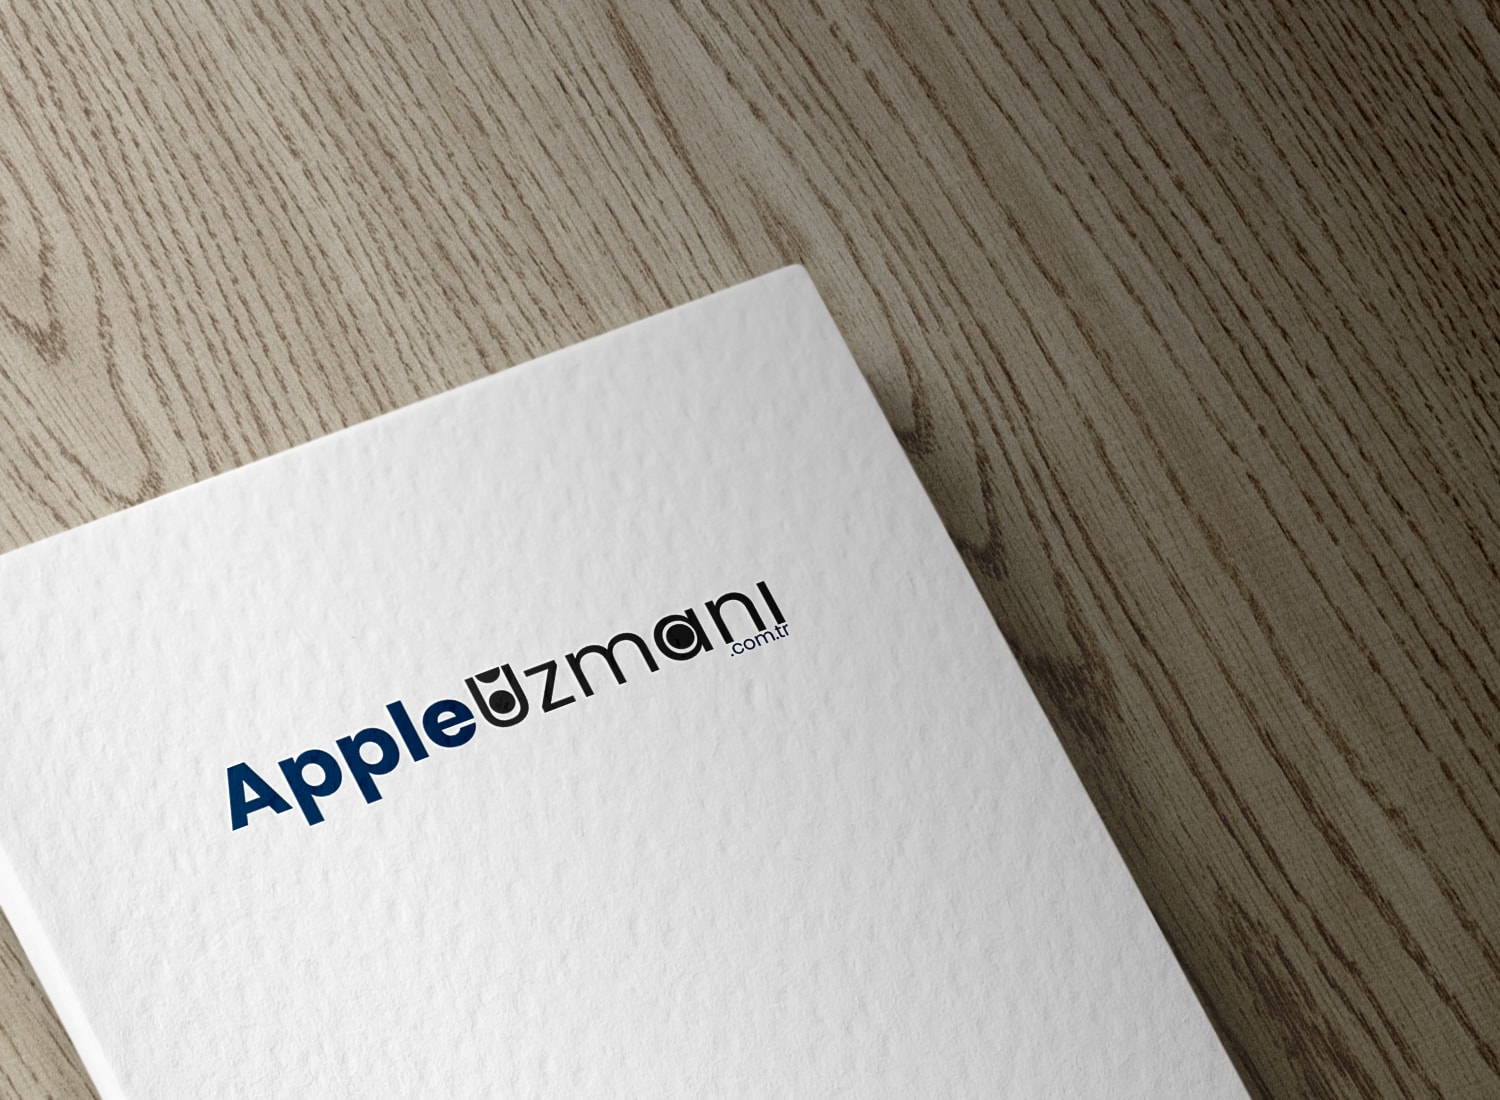 appleuzmani